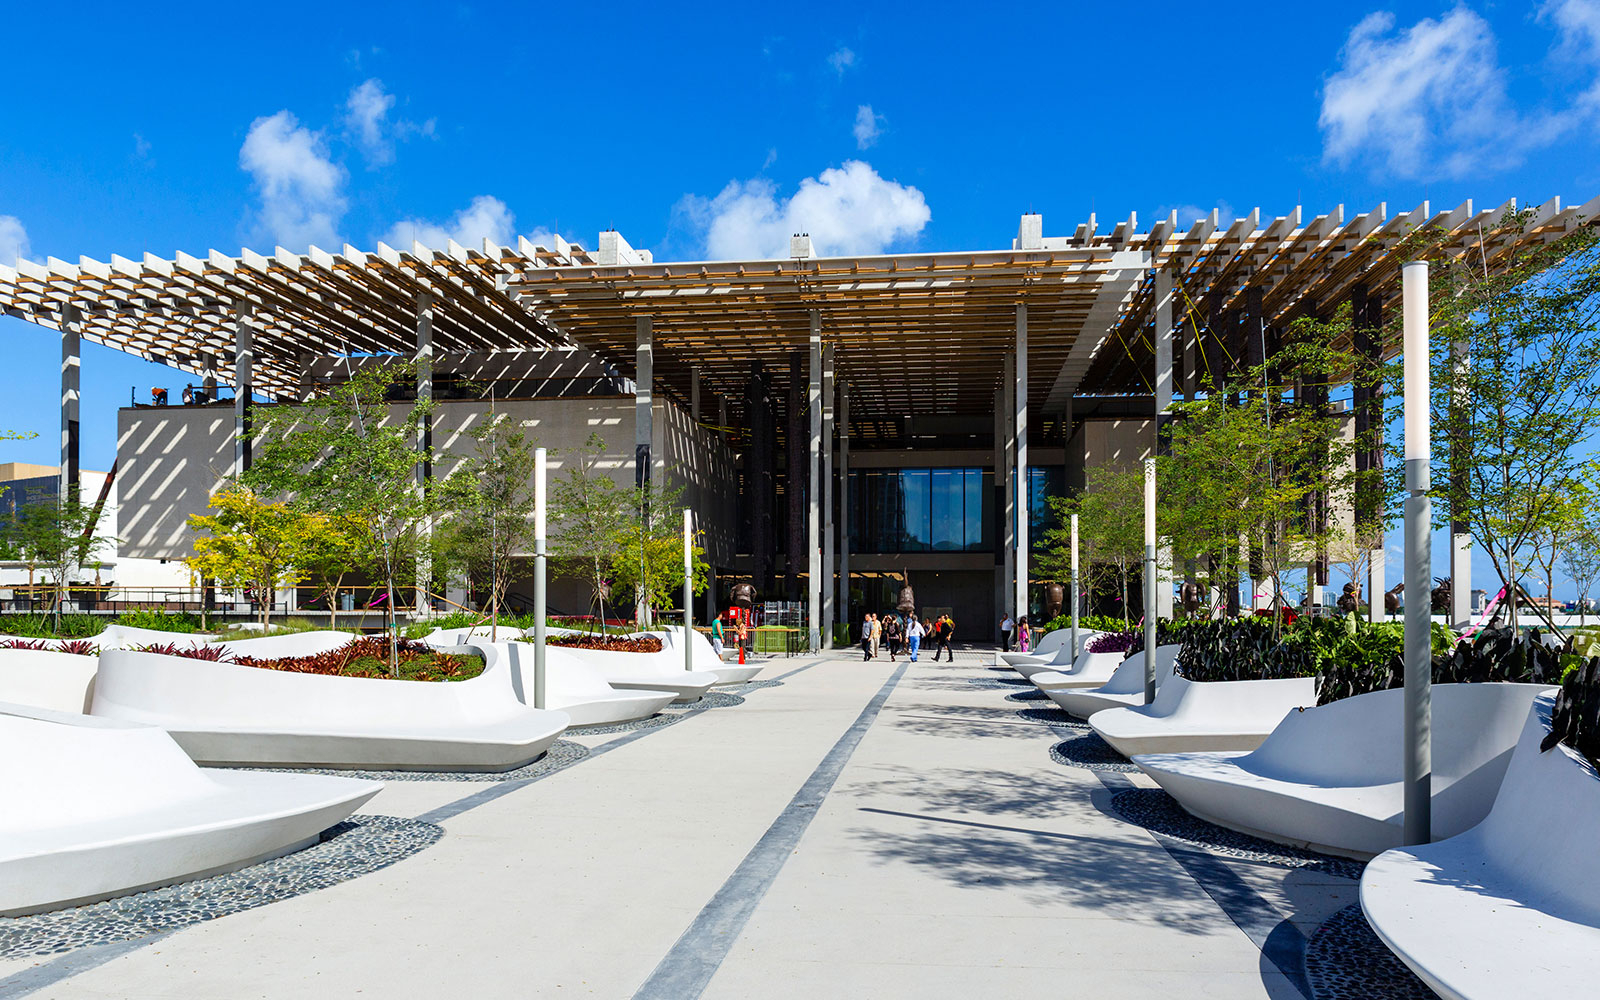 MIAMI0815-perez-art-center.jpg